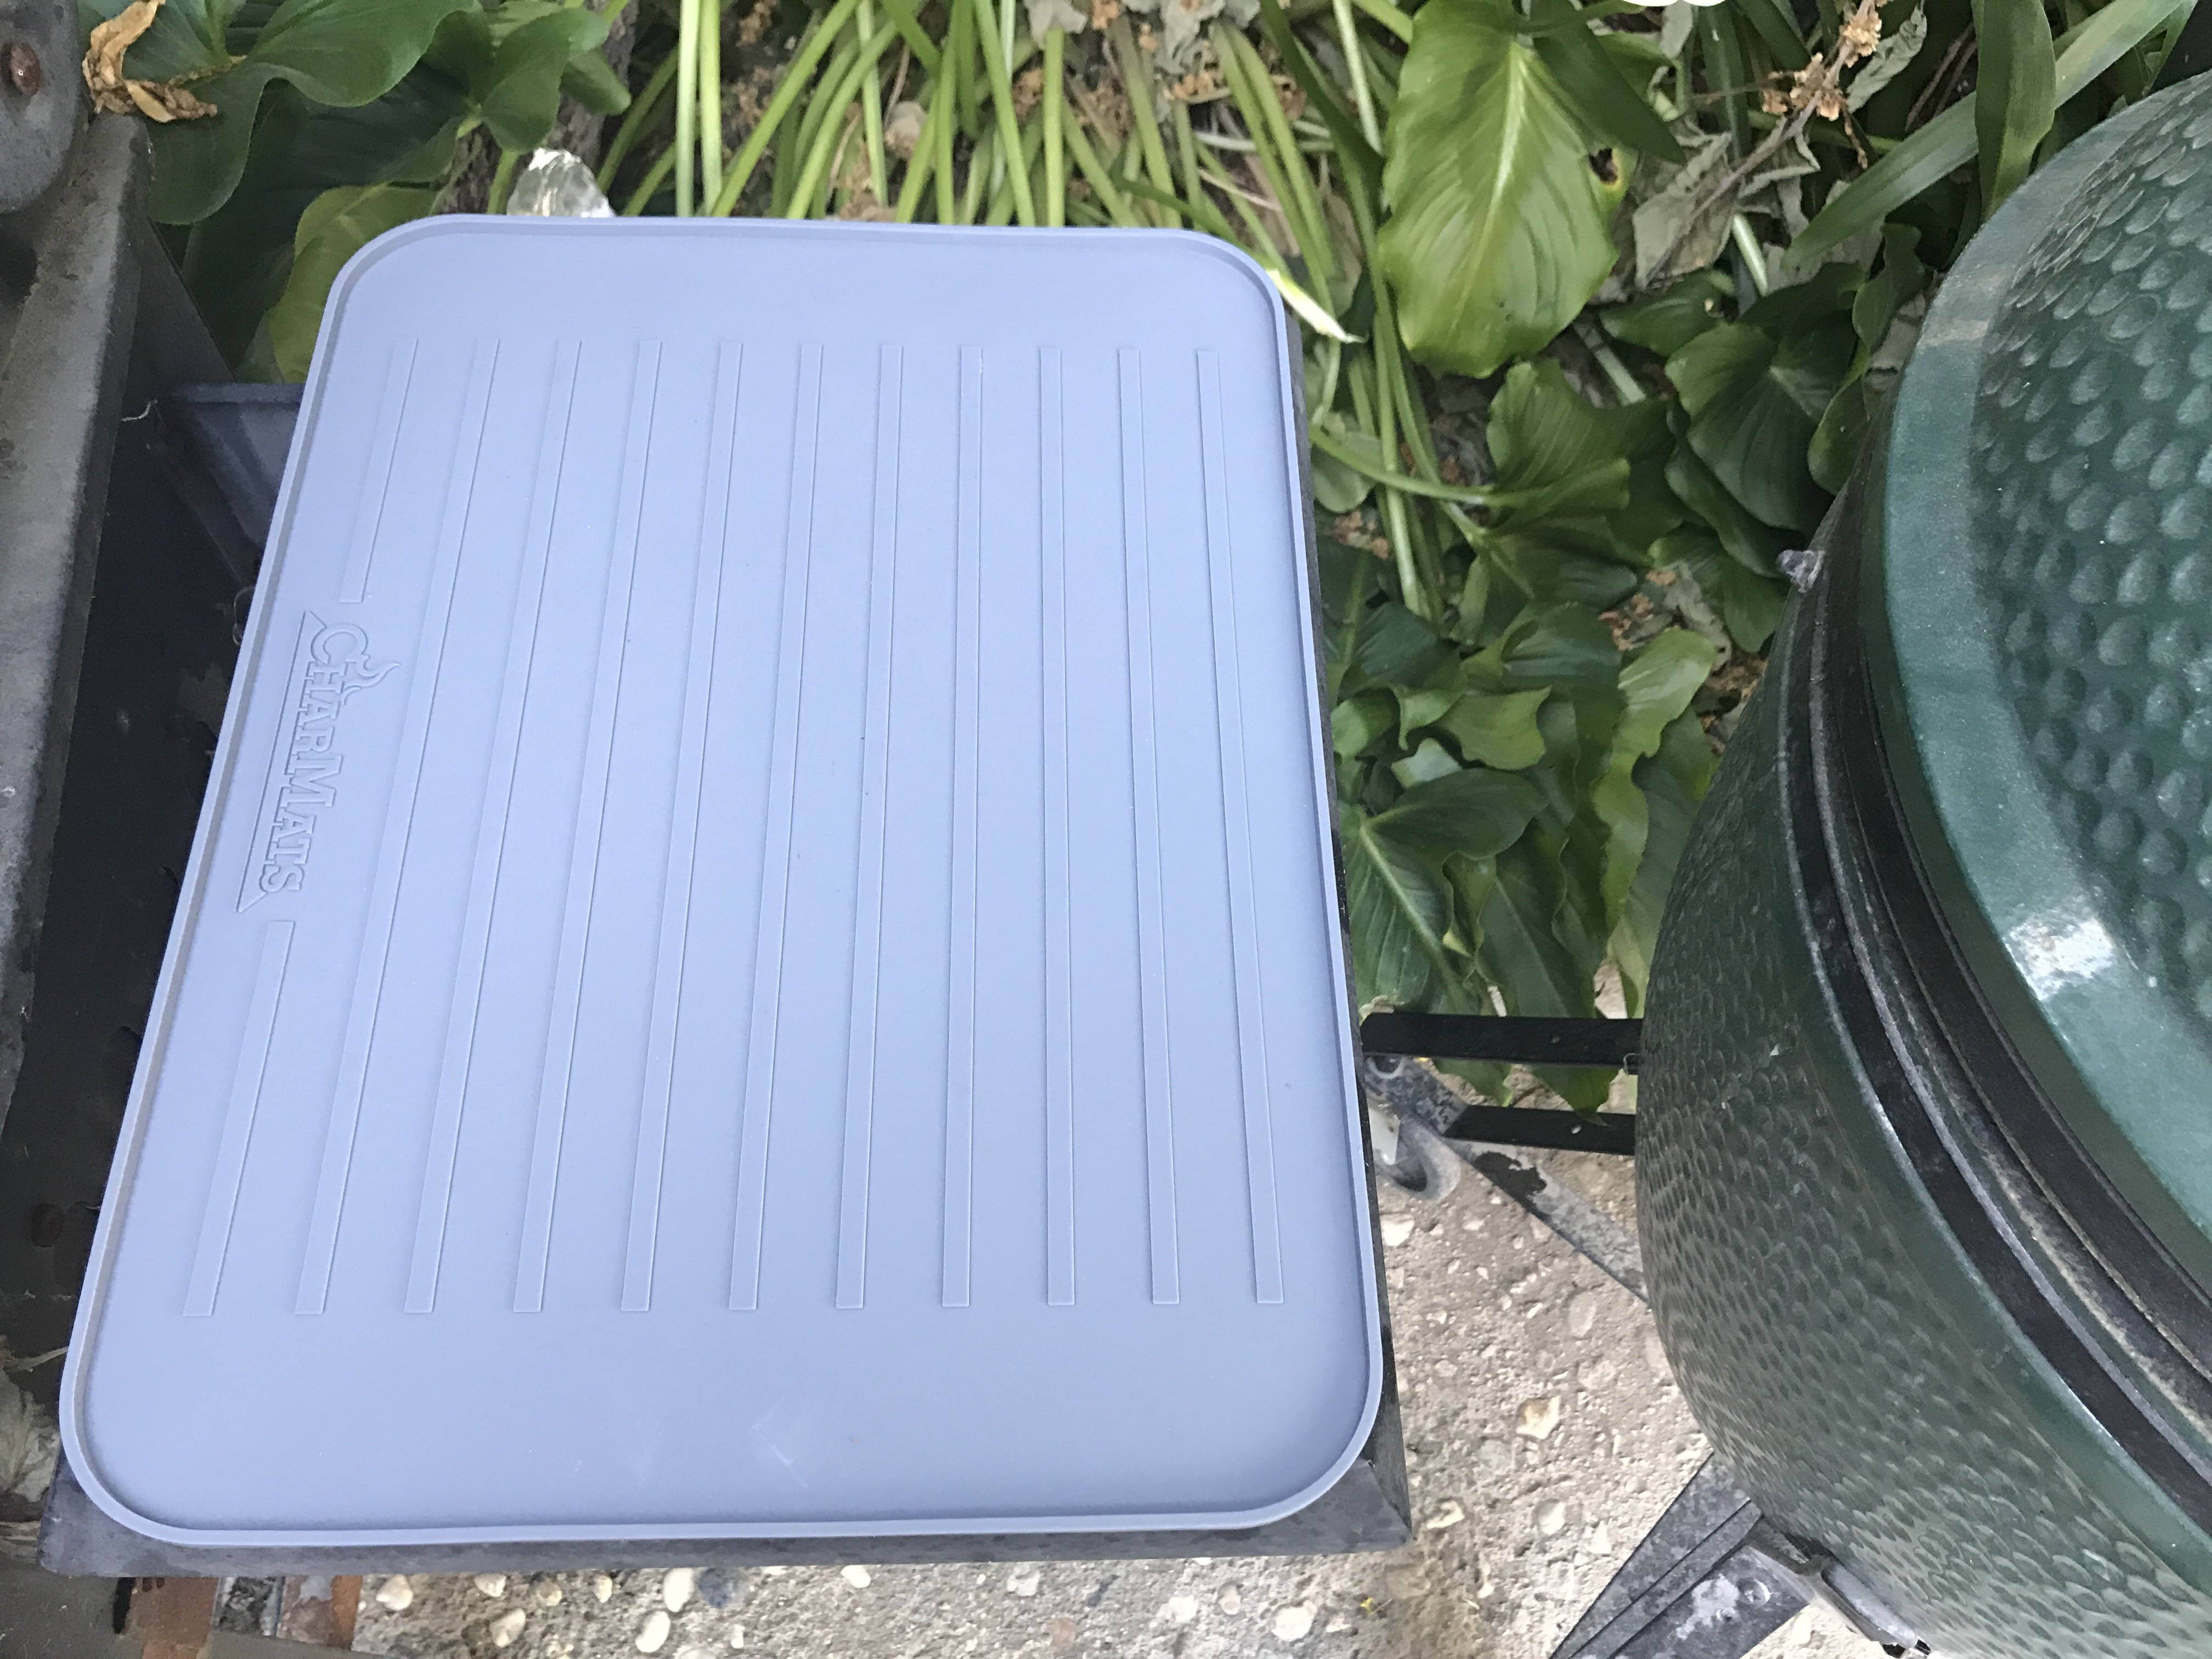 CharMats Protective Silicone BBQ Mat